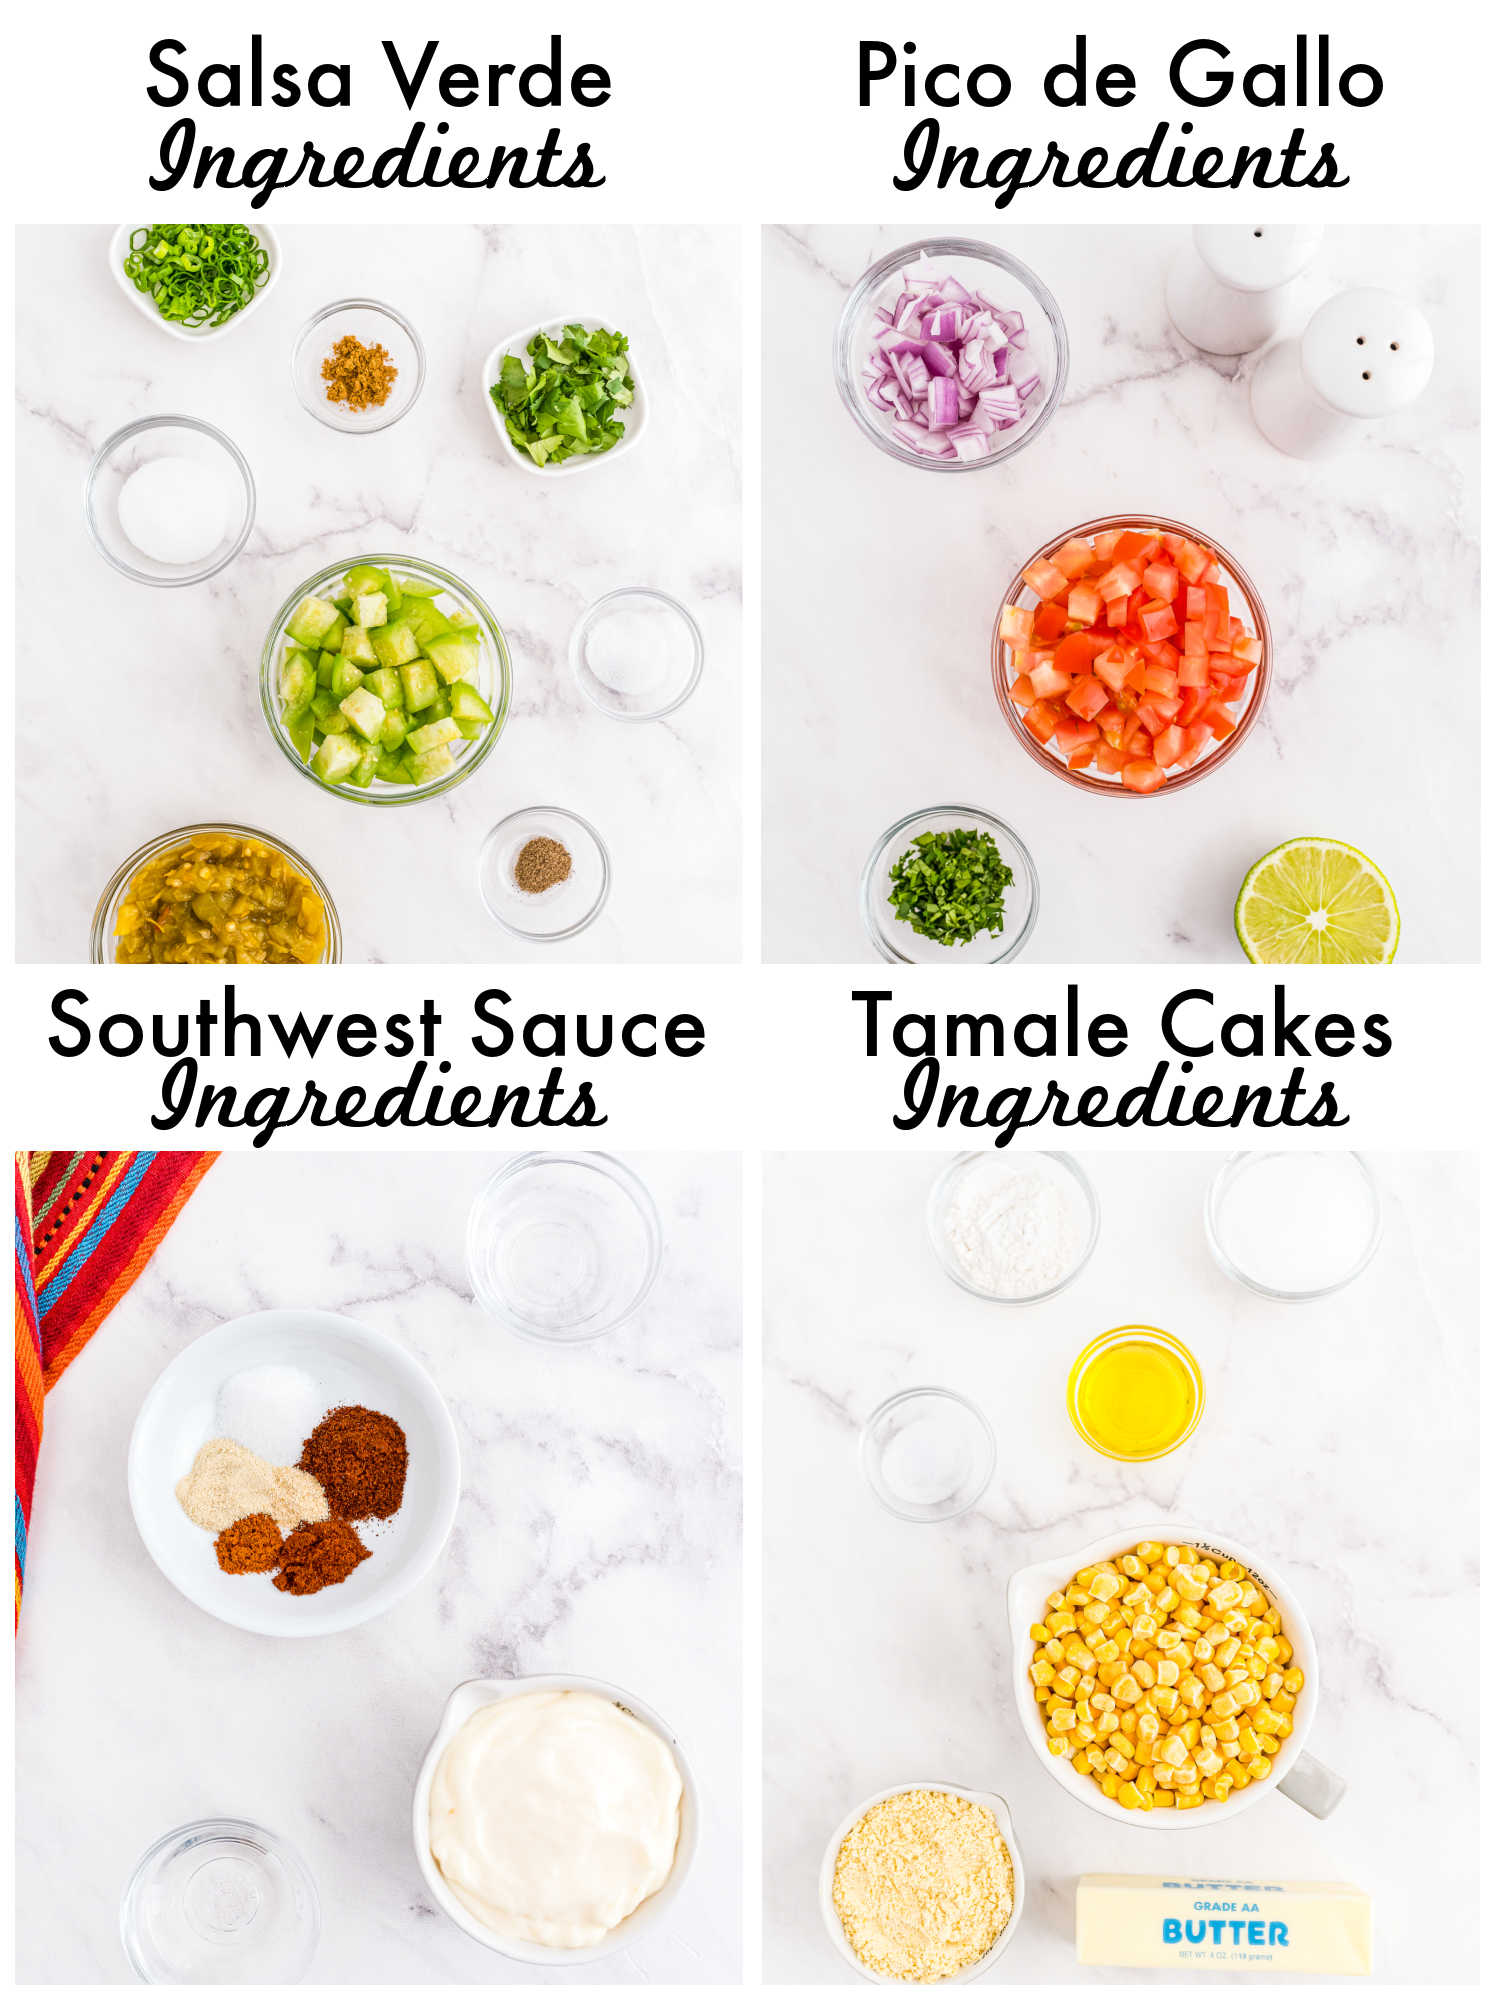 All of the ingredients needed to make this Sweet Corn Tamale Cakes recipe.